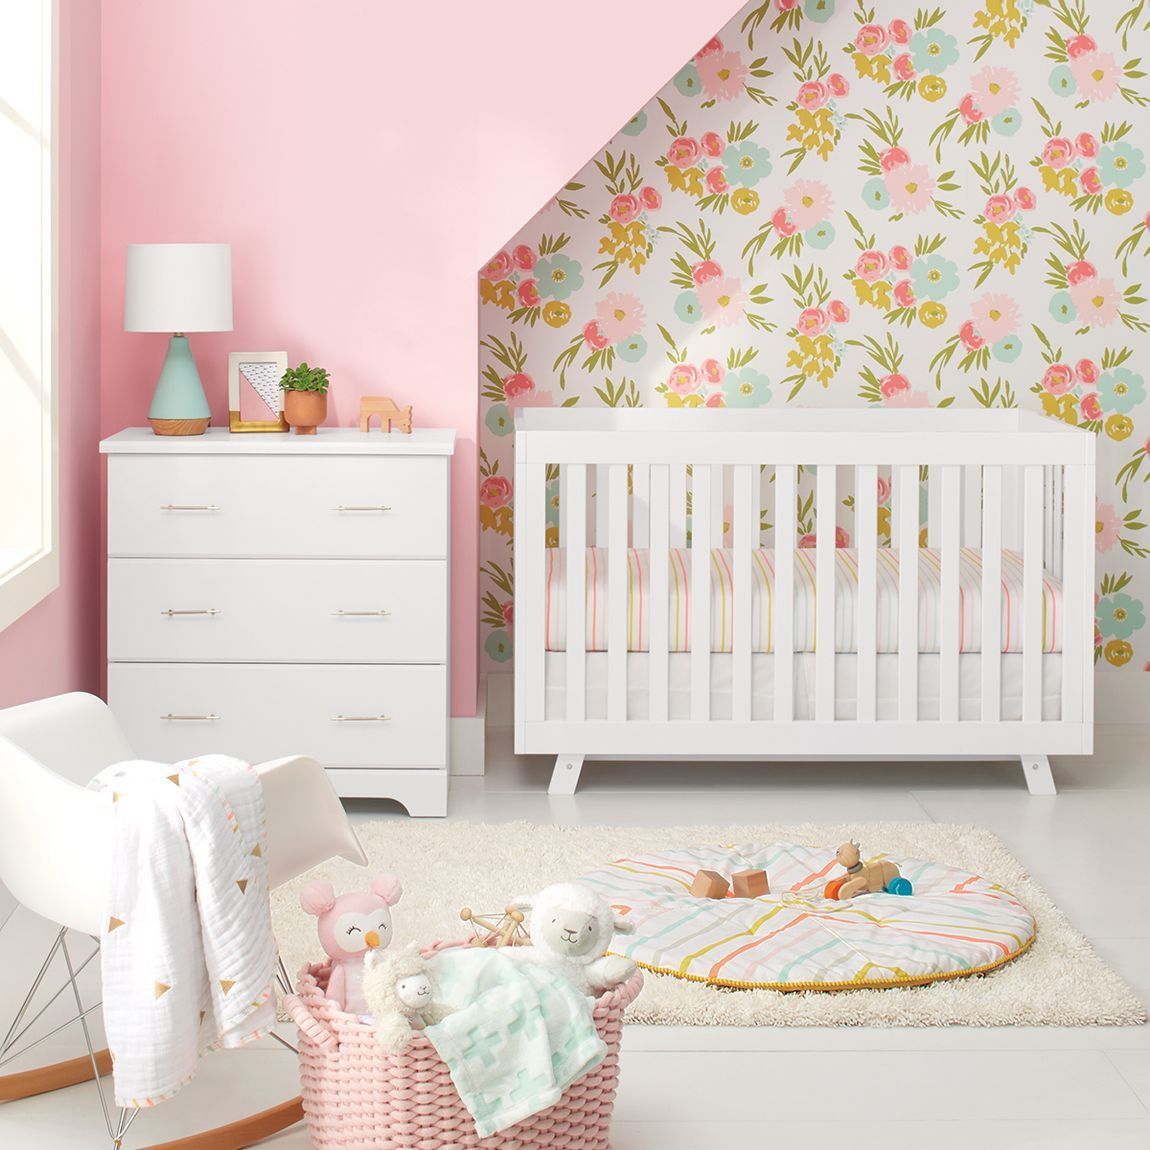 Shop For Wallpaper At Target Find Textured Beadboard Self Adhesive And Paintable Wallpaper Free Shipping Retur Crib Bedding Crib Bedding Sets Bedding Set